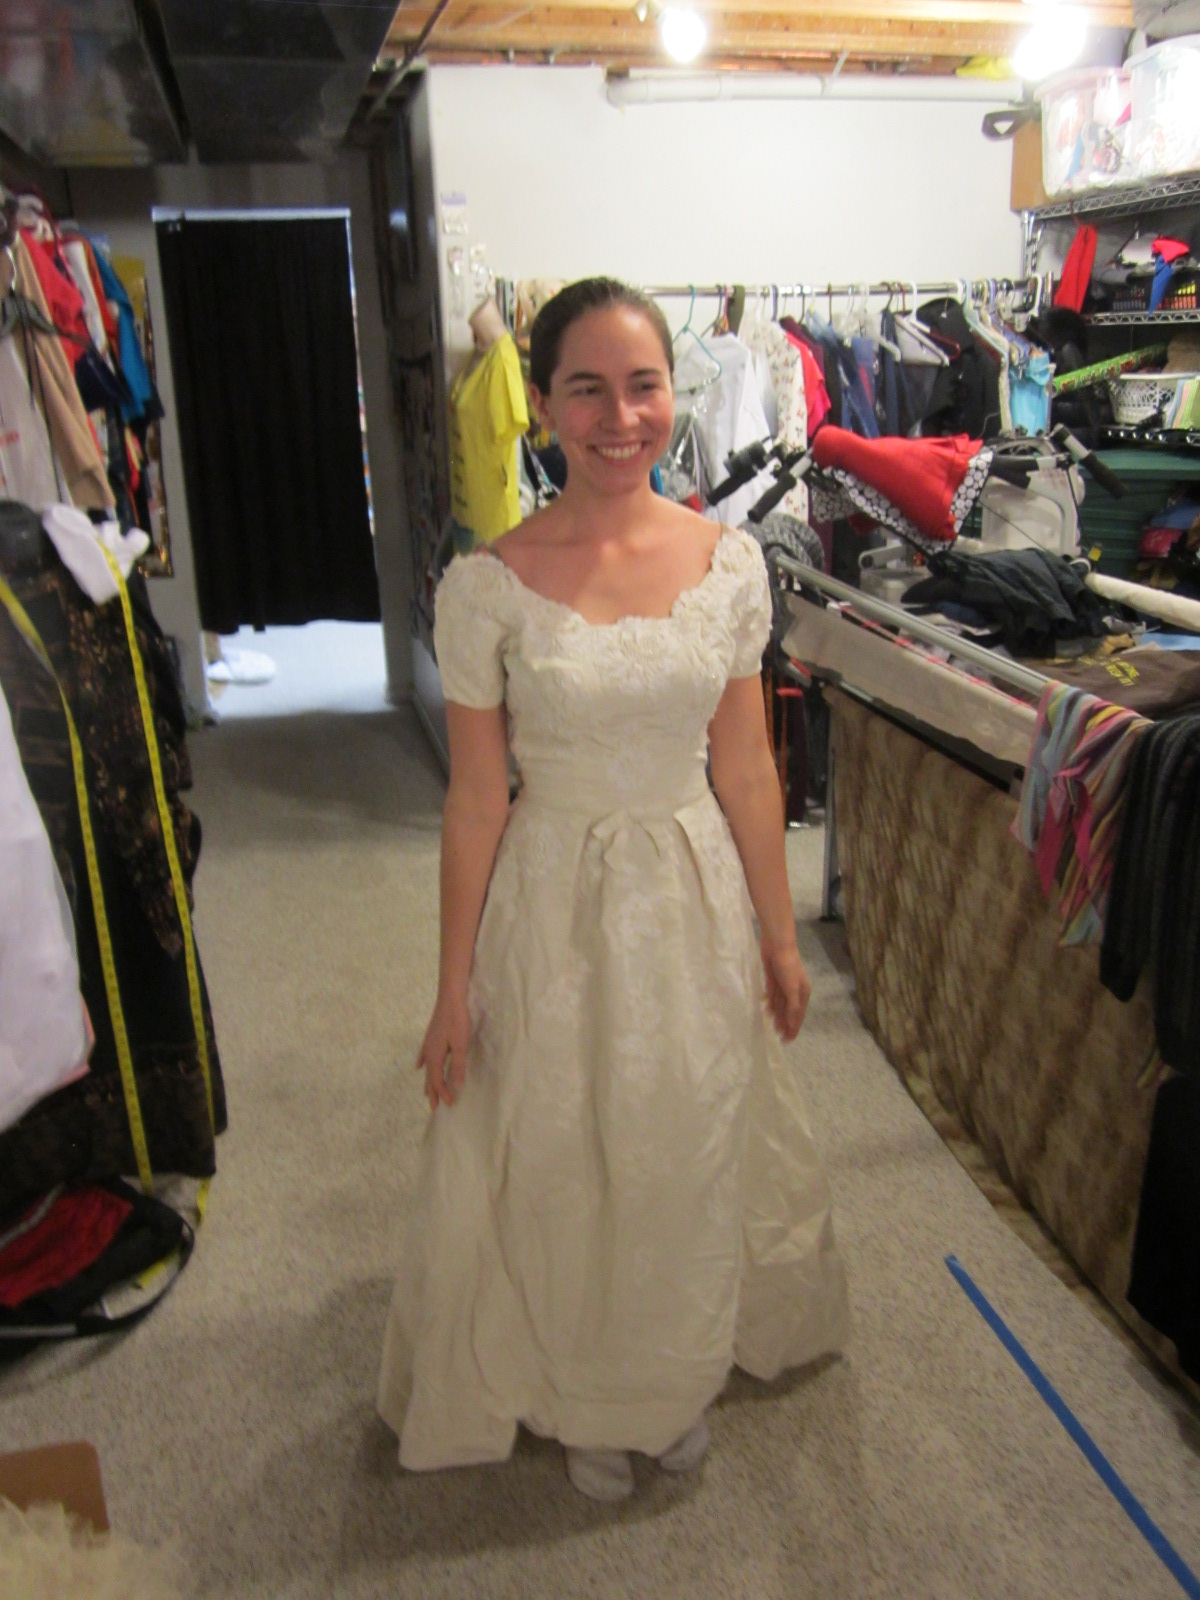 Recycling Wedding Dress 92 Perfect The necklace she is